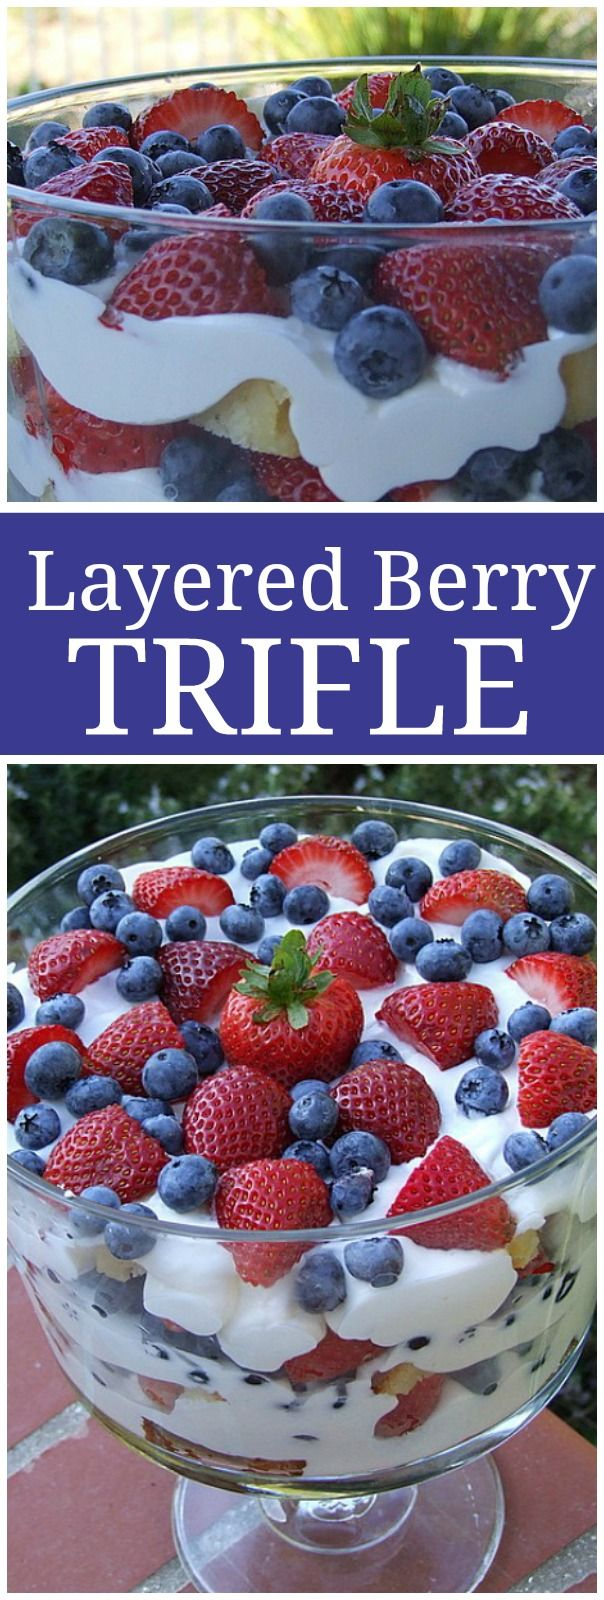 This Layered Berry Trifle is the perfect, easy dessert to make in spring, summer or early fall- any time you have fresh berries!  Also a nice Mother's Day dessert recipe, Easter dessert recipe or 4th of July dessert recipe!  Recipe from RecipeGirl.com.